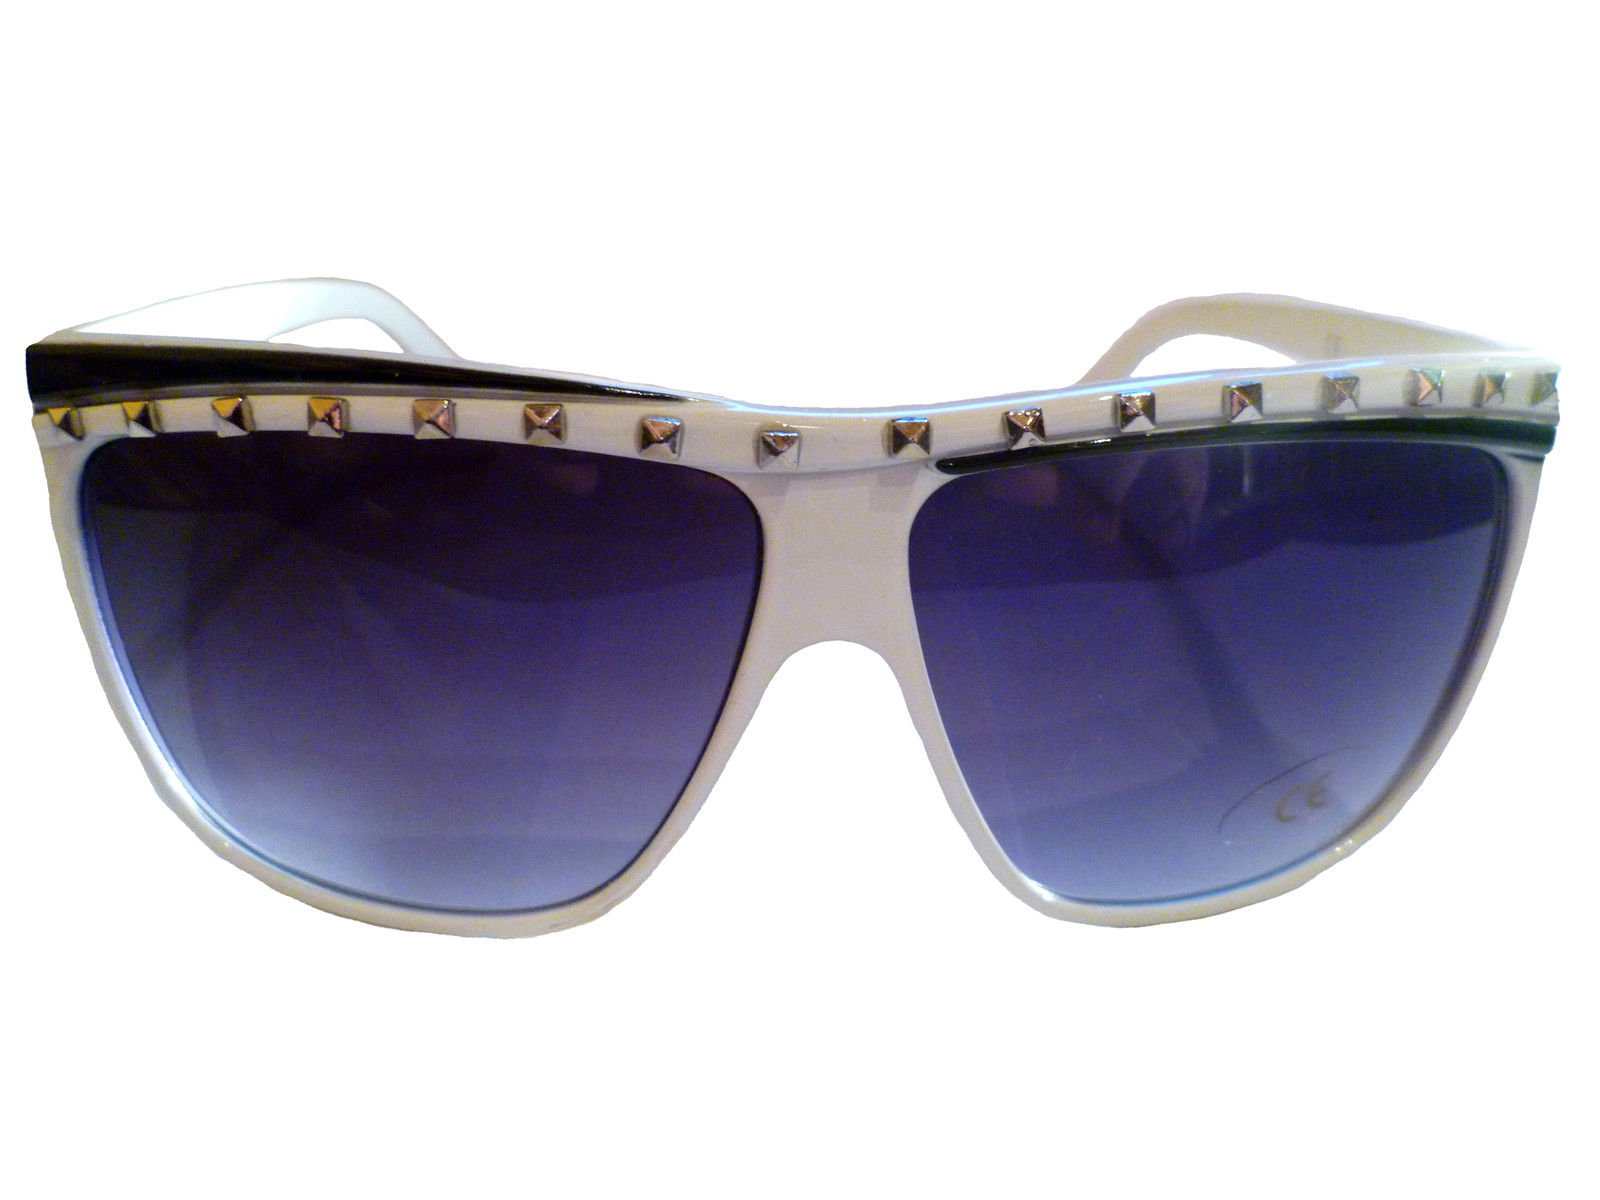 80s-RETRO-PARTY-ROCK-NEON-FRAME-LMFAO-ROCK-POP-PARTY-WAYFARER-SUNGLASSES